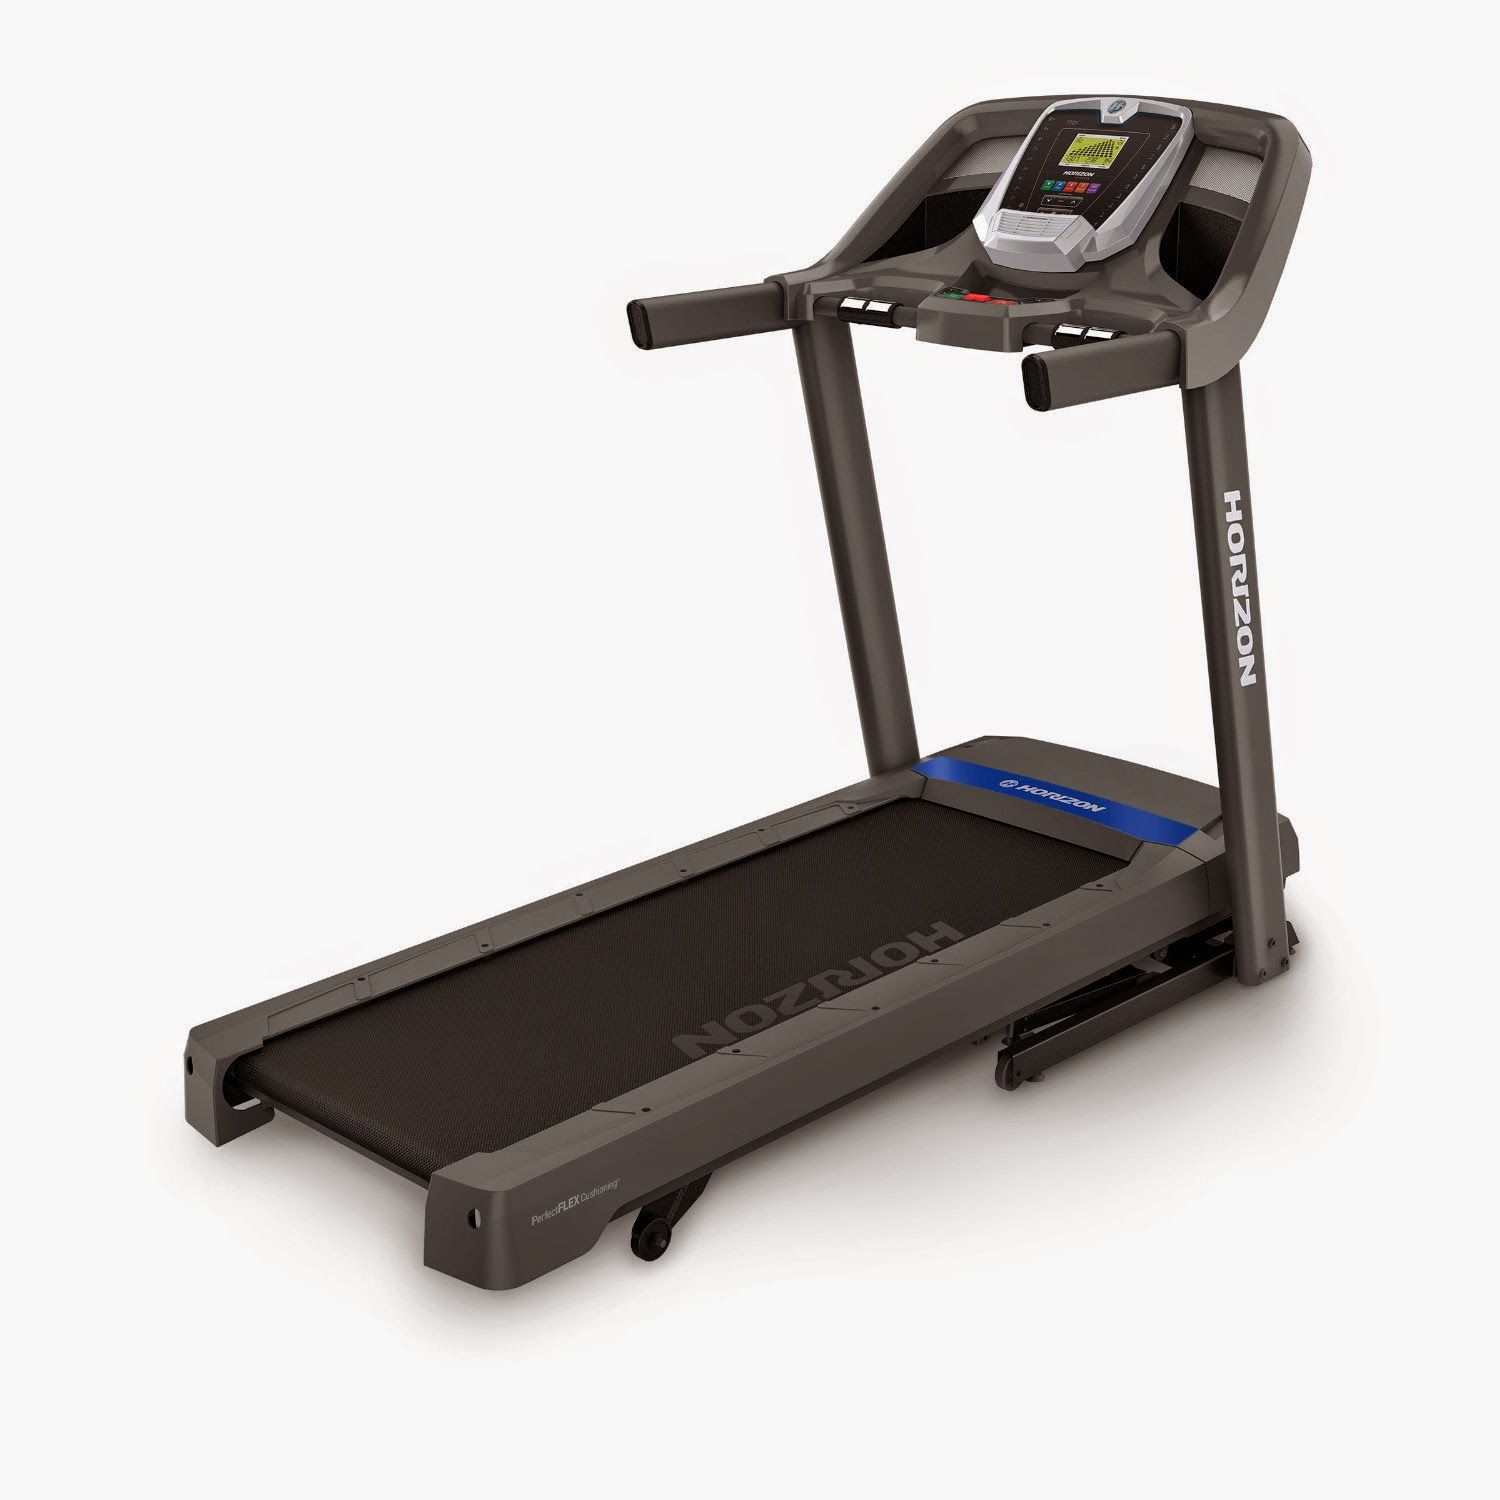 Horizon Fitness T101-04 Treadmill, review, 30 programs, 10% incline, Perfect FLEX Deck Cushioning, folding deck, fan, speakers, MP3 input, pulse grip heart rate monitors